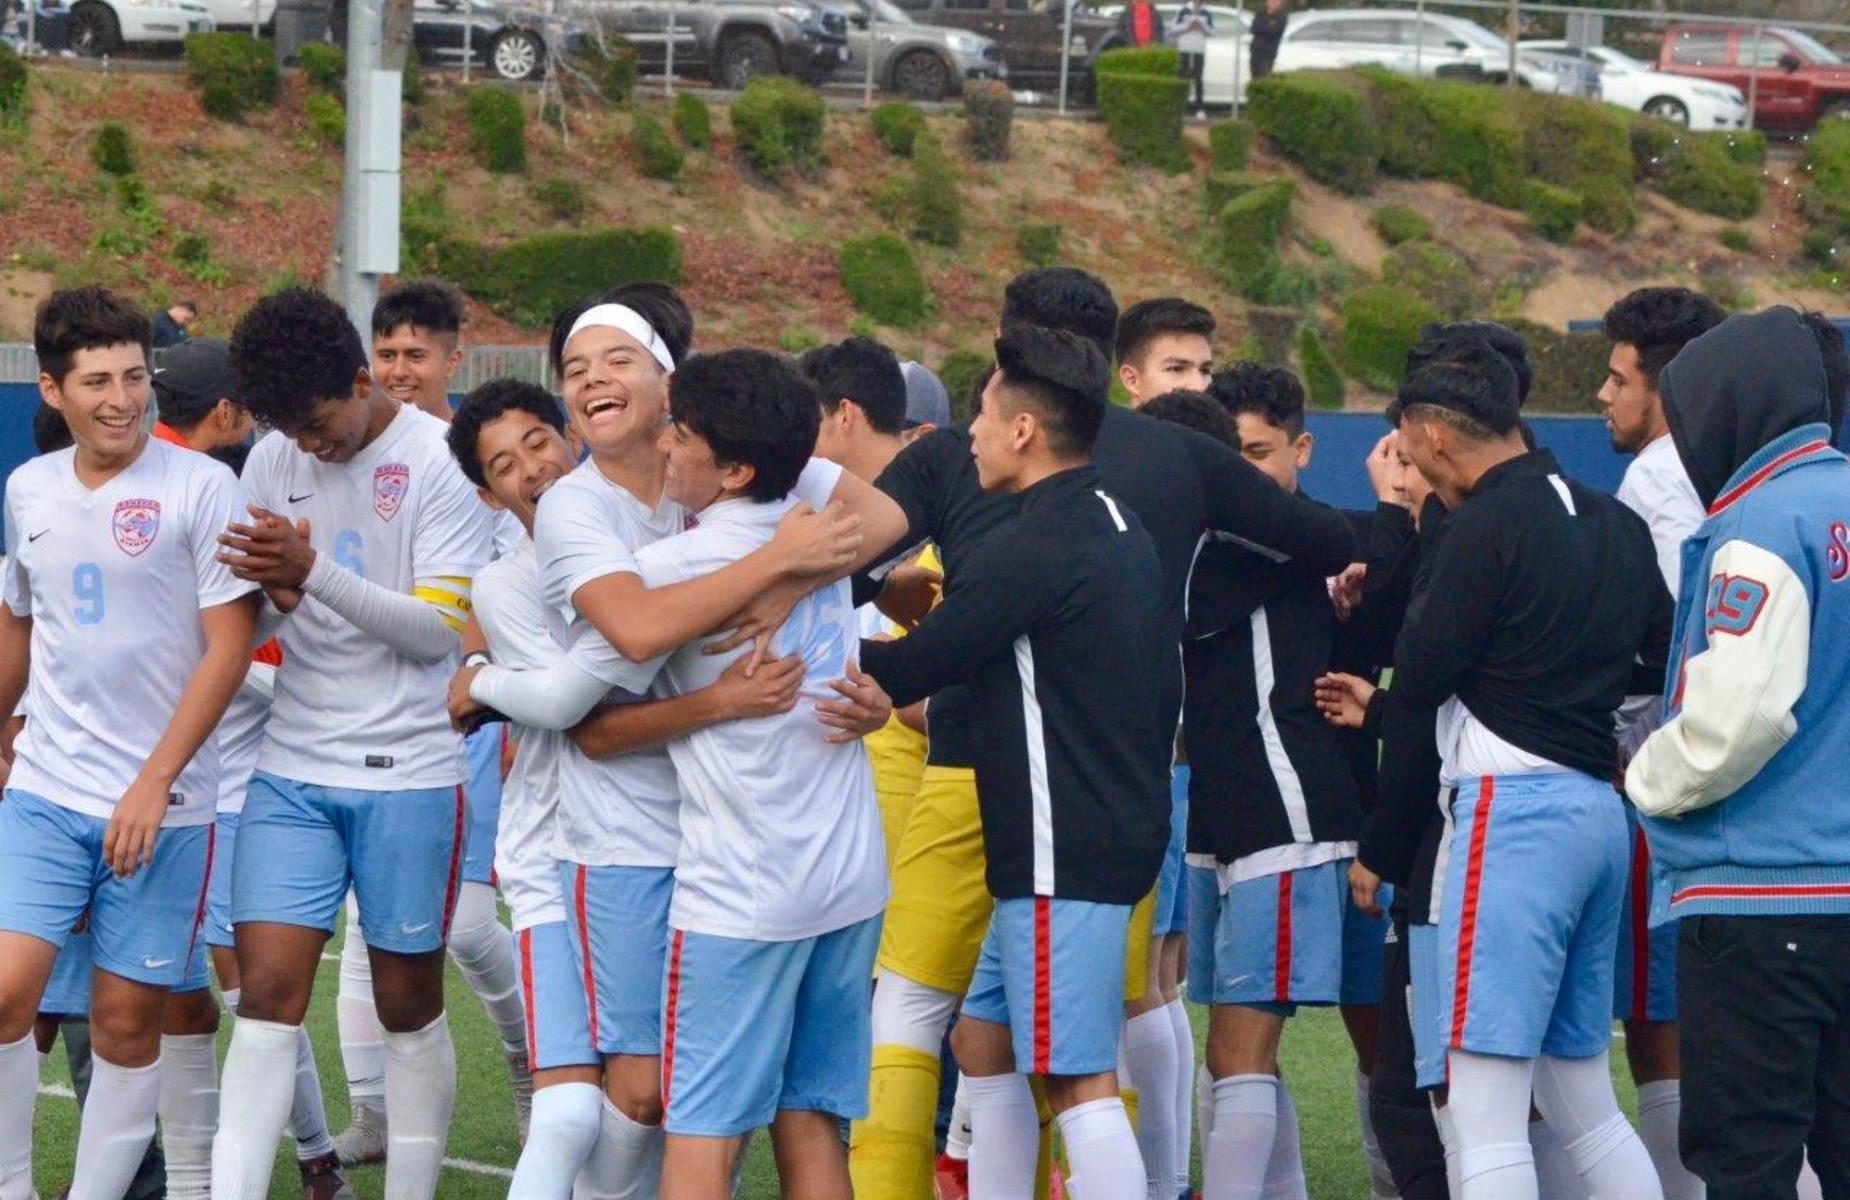 Ganesha Boys Soccer Team made it to the CIF FINALS after a 3-0 win vs Pasadena Poly!  So proud of our boys, congratulations to the players, coaching staff and everyone that cheered our GIANTS on to VICTORY! #Proud2BePUSD #GaneshaGIANTS @ganeshahighPUSD